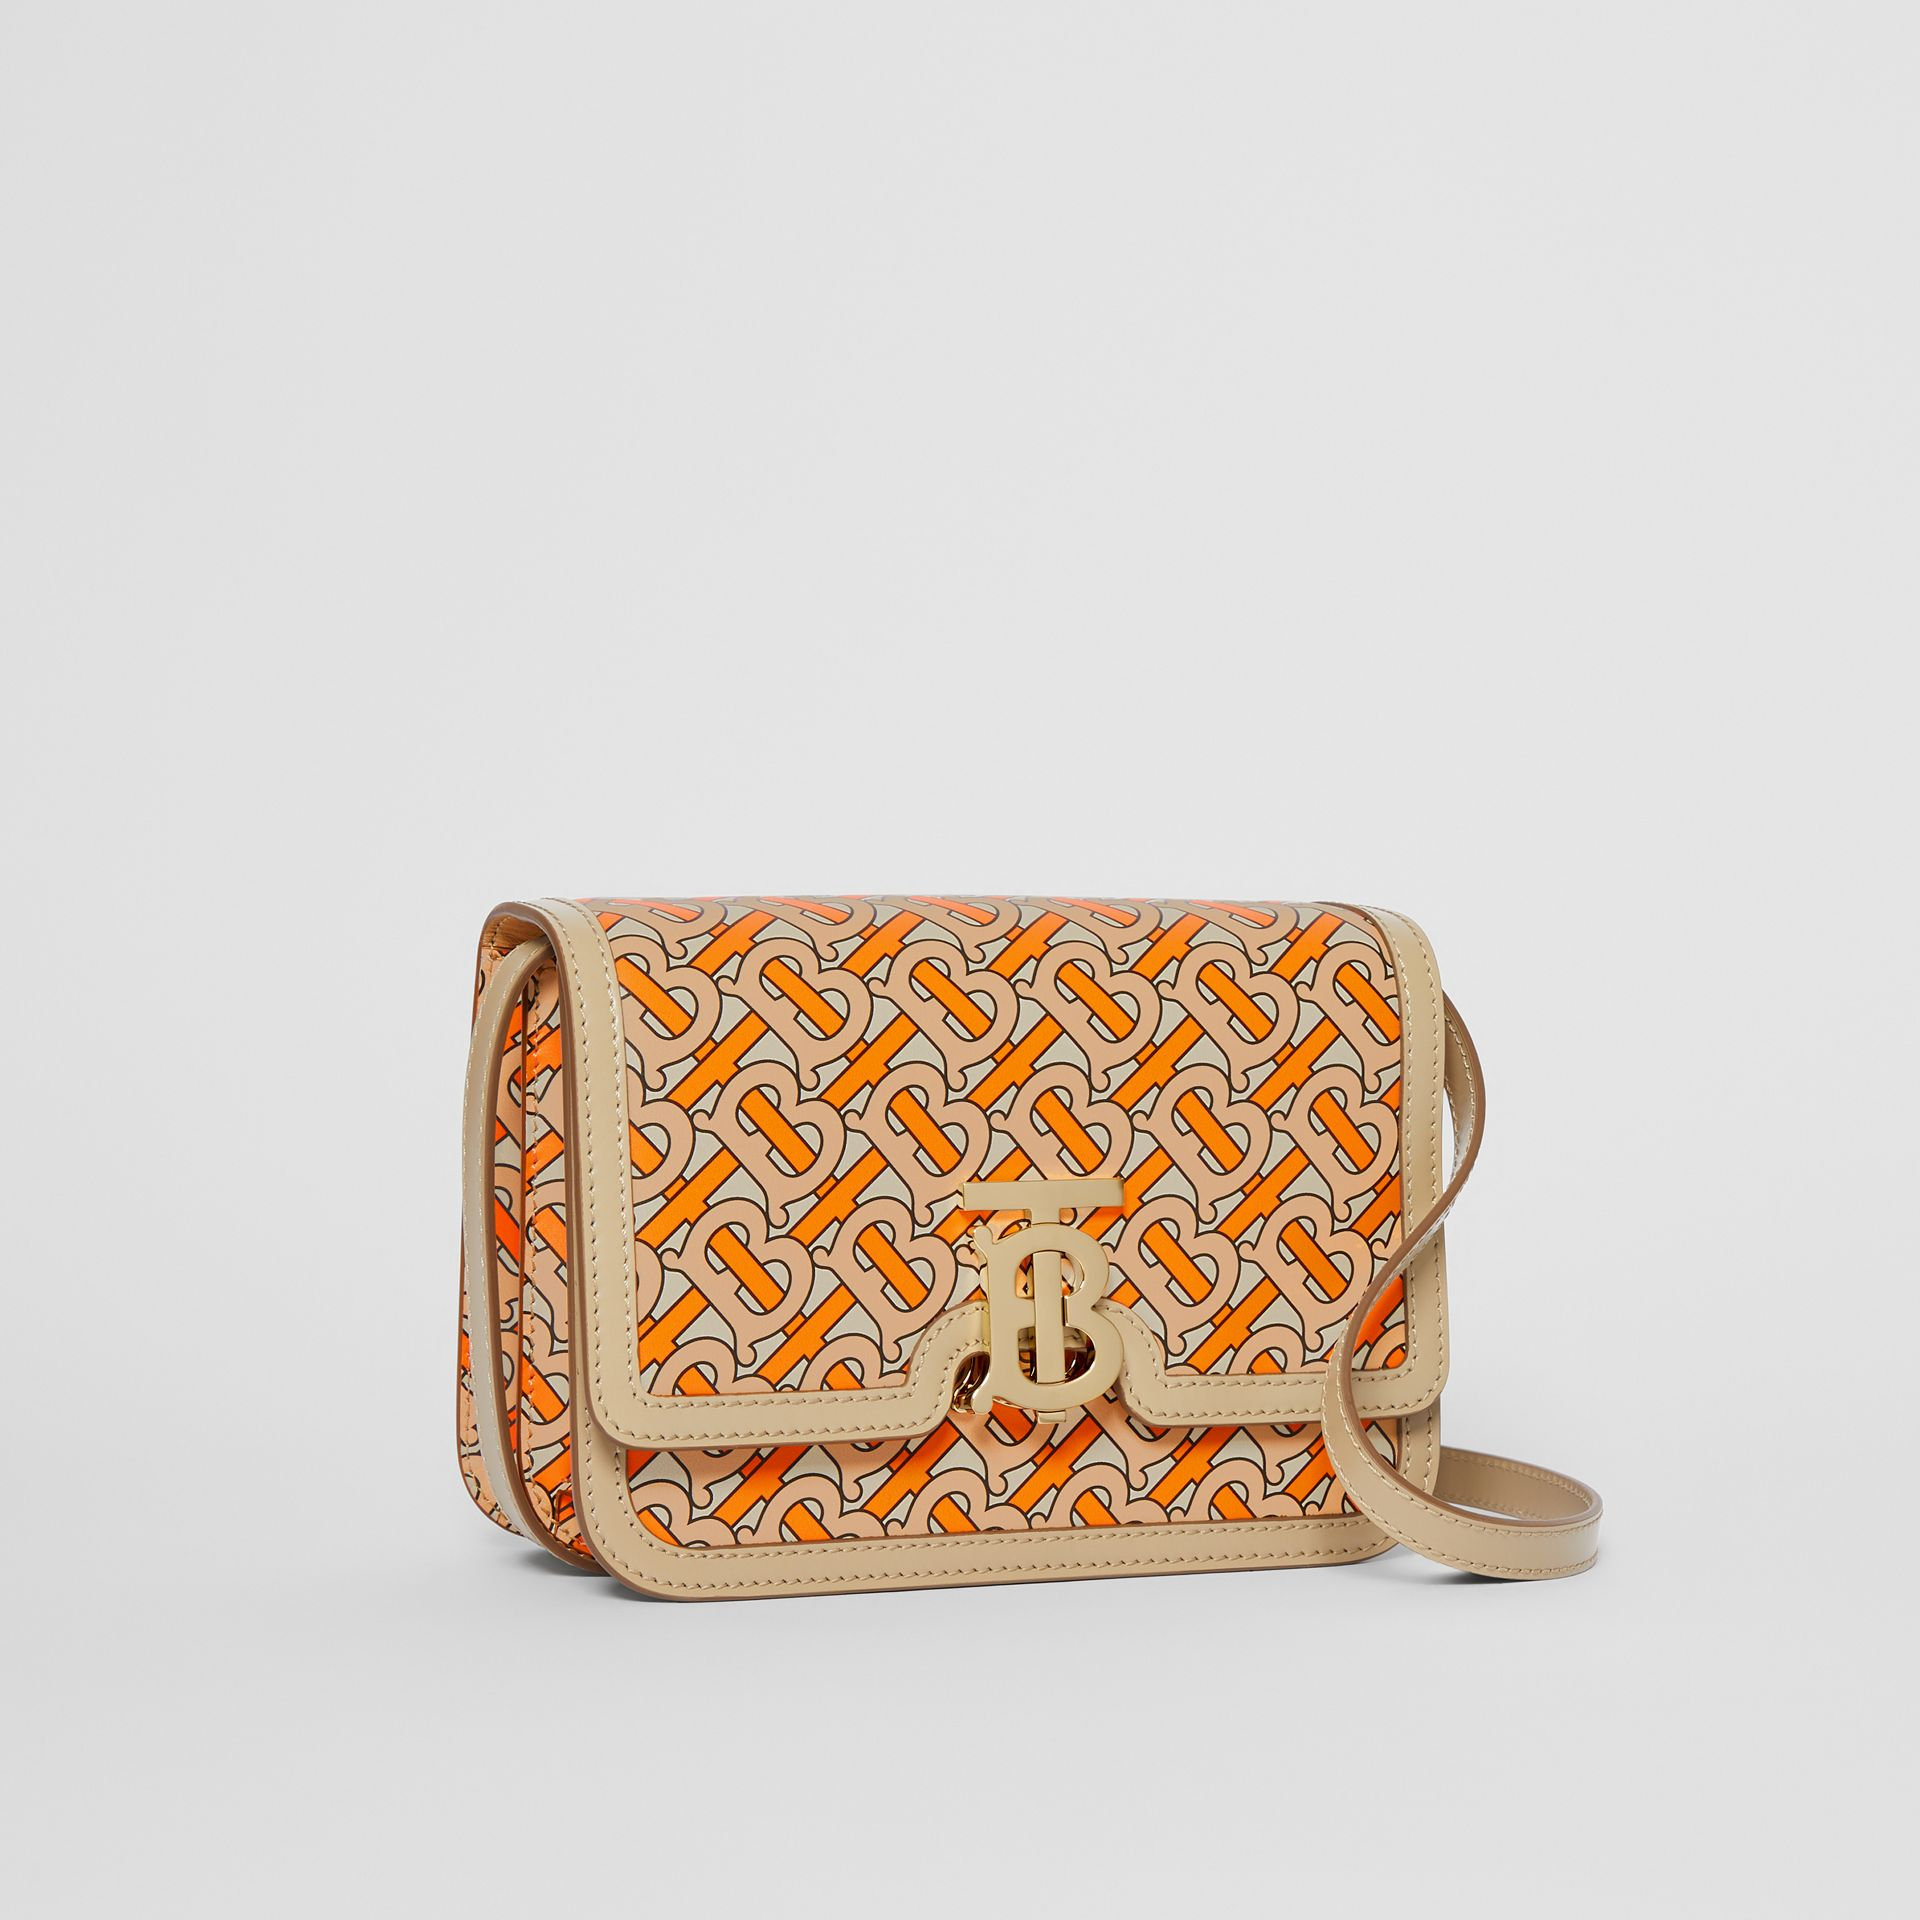 Small Monogram Print Leather TB Bag in Bright Orange - Women | Burberry - gallery image 6